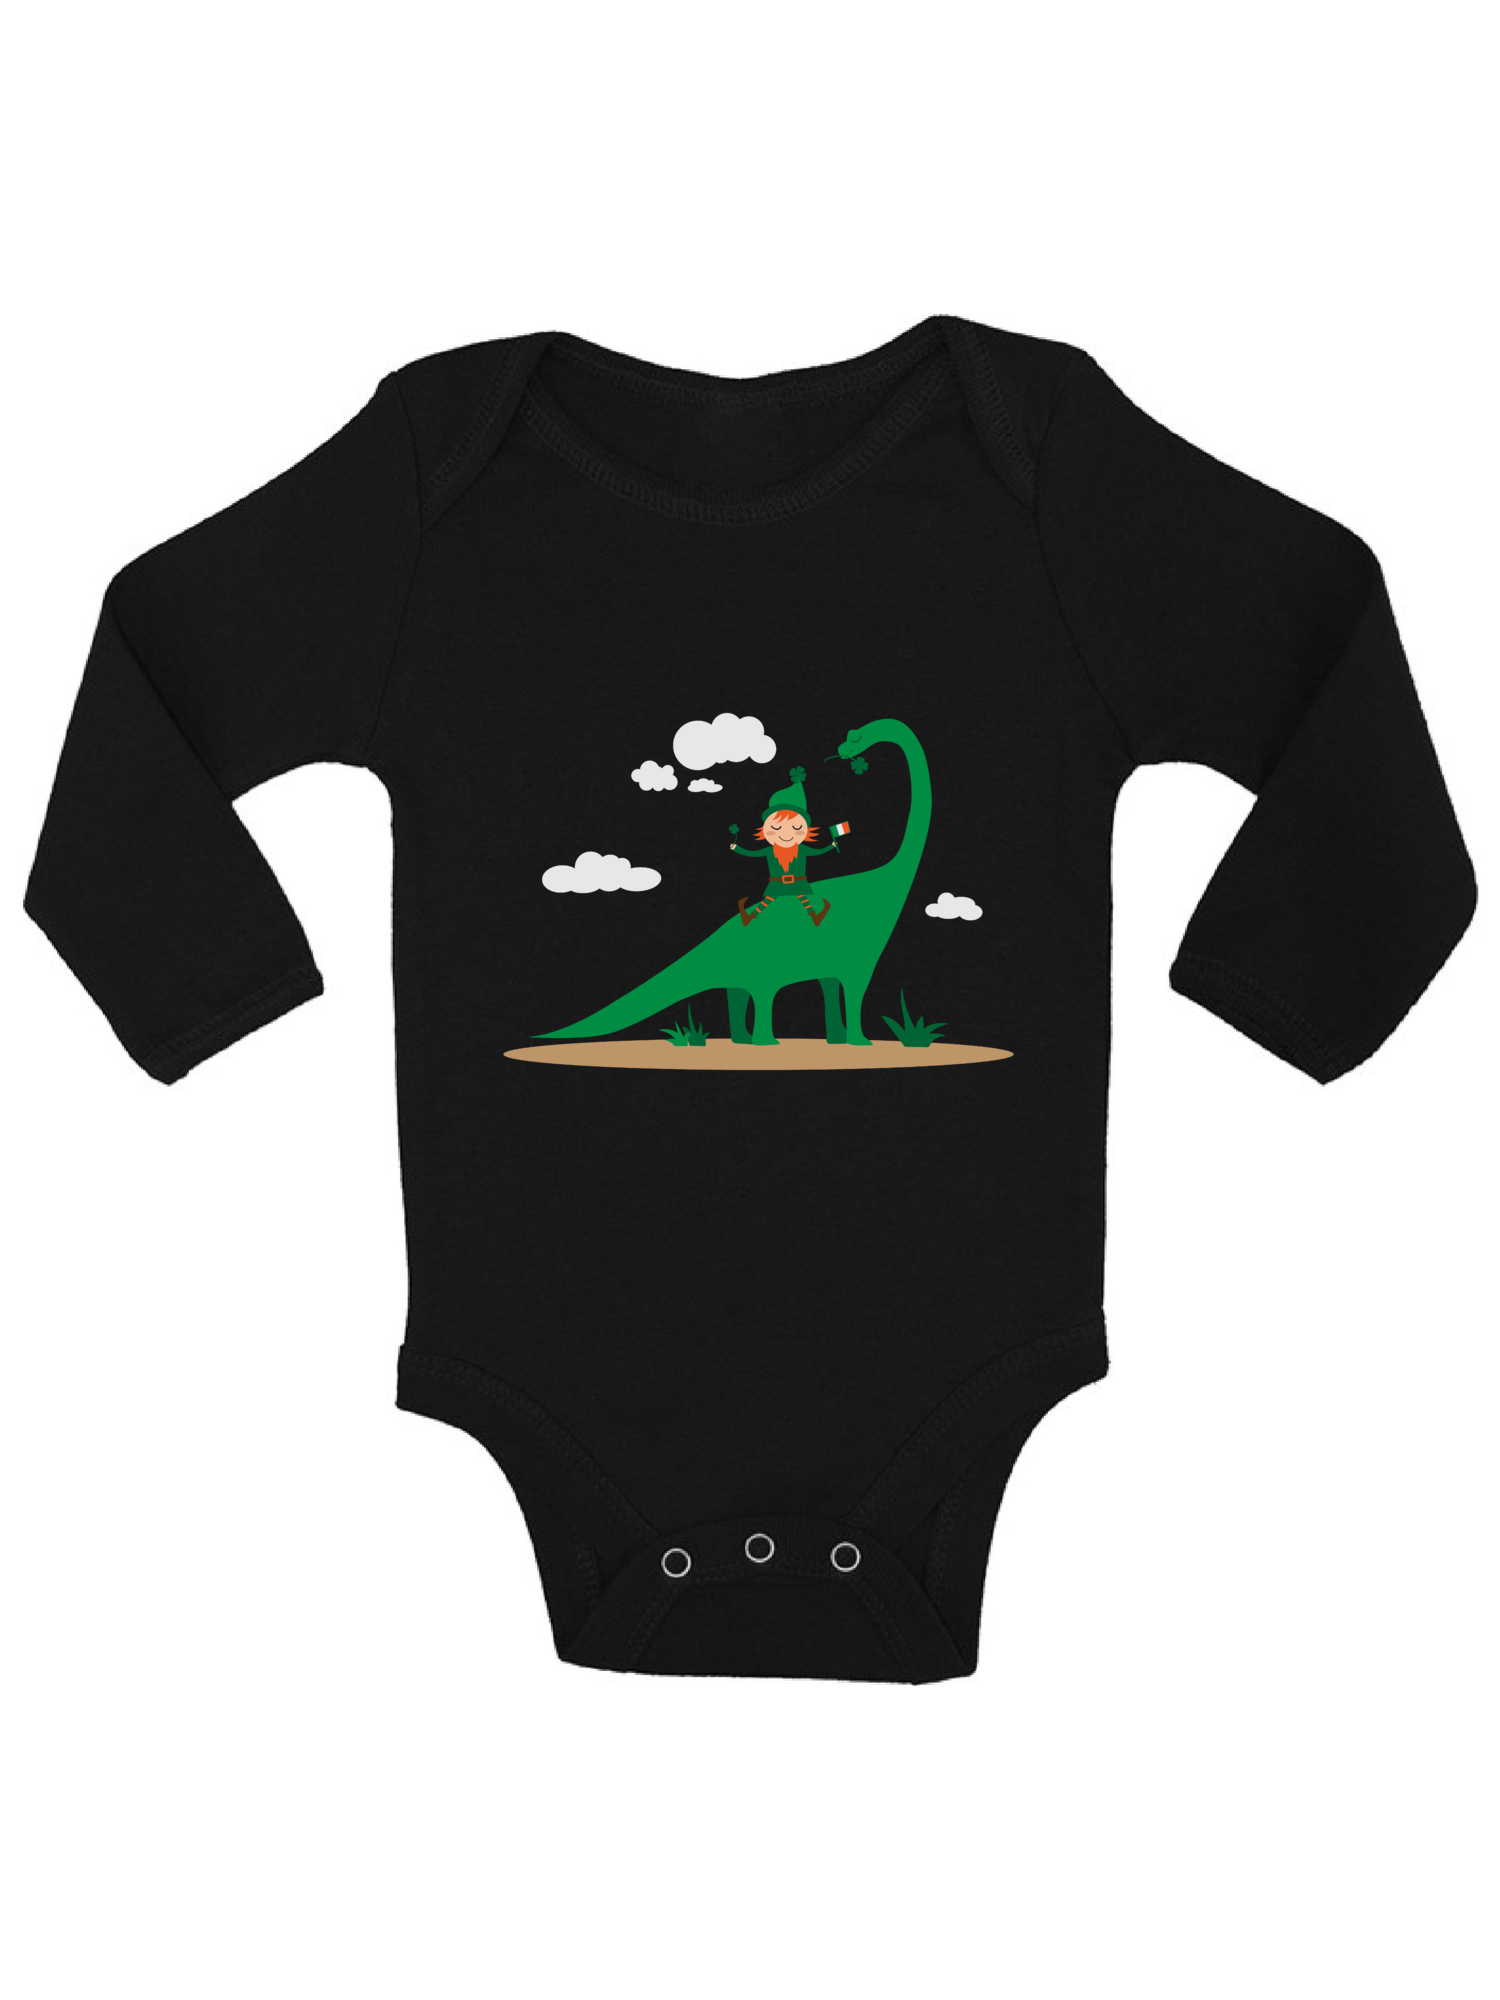 Newborn Kids Happy Dinosaur Surfer Wearing Sunglasses Printed Long Sleeve 100/% Cotton Infants Tops